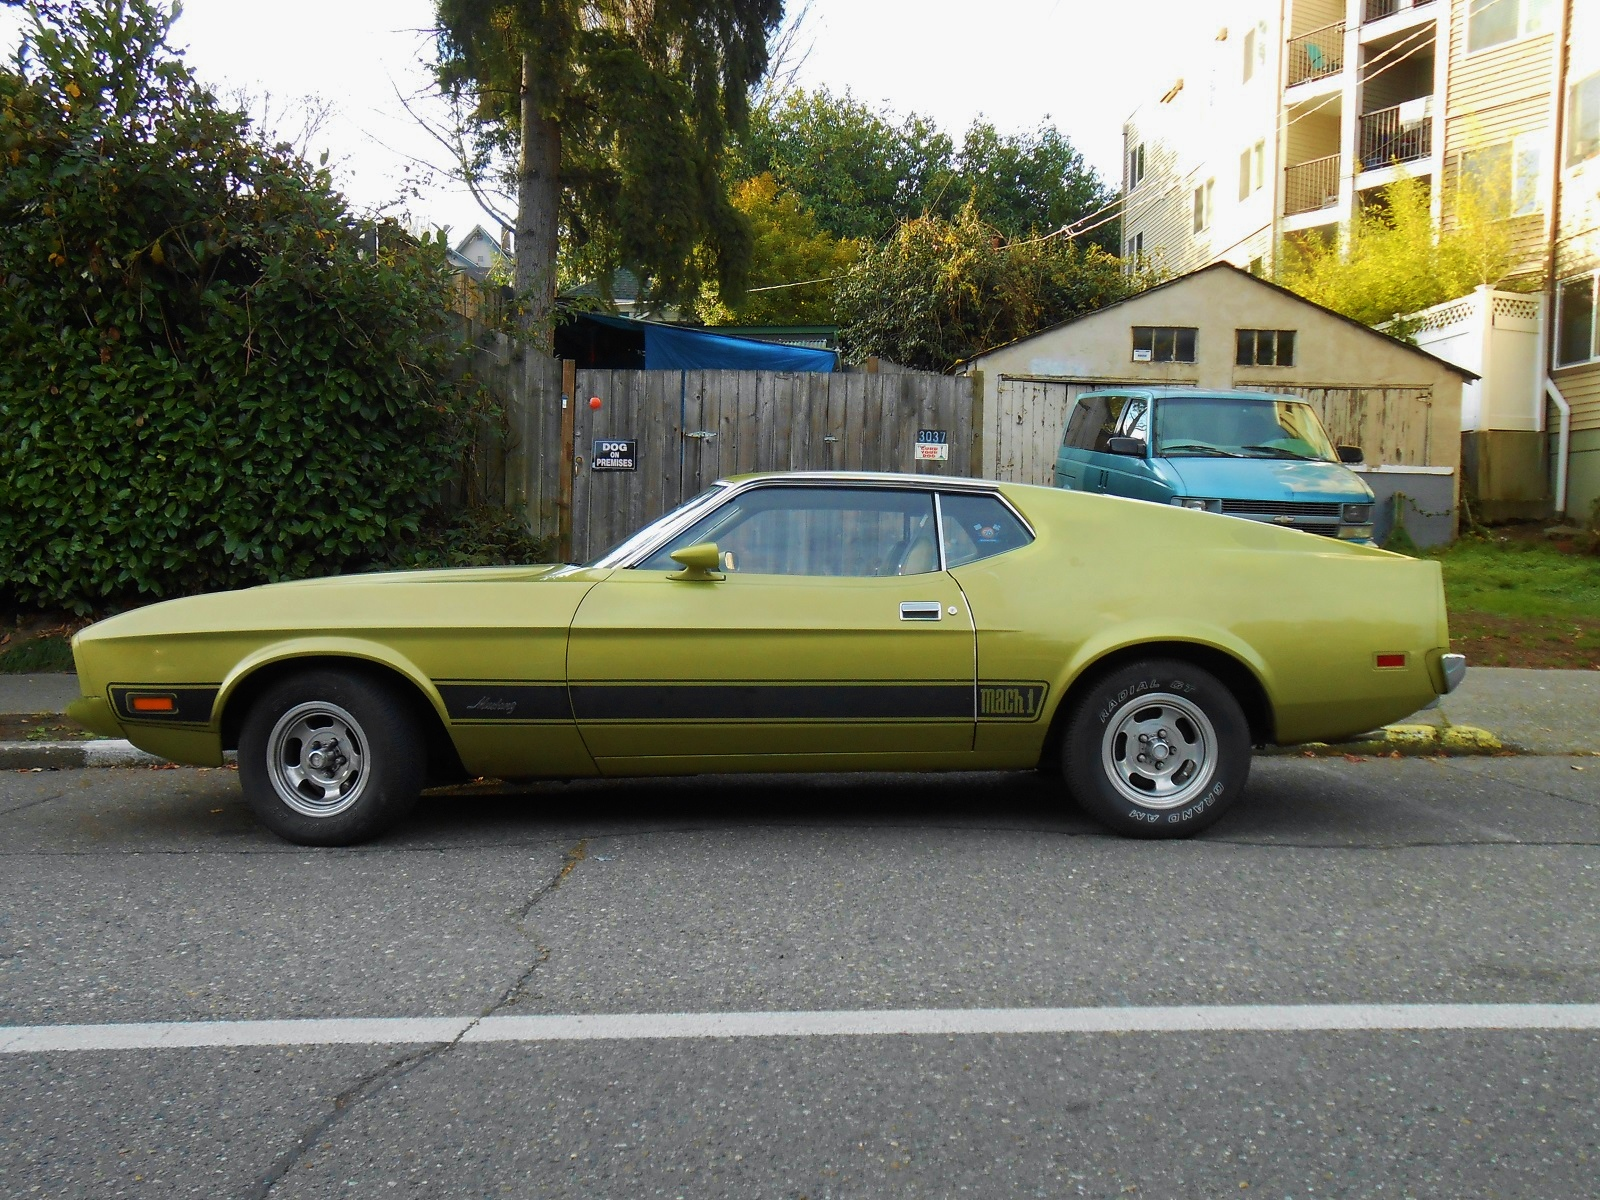 Seattle S Parked Cars 1973 Ford Mustang Mach 1